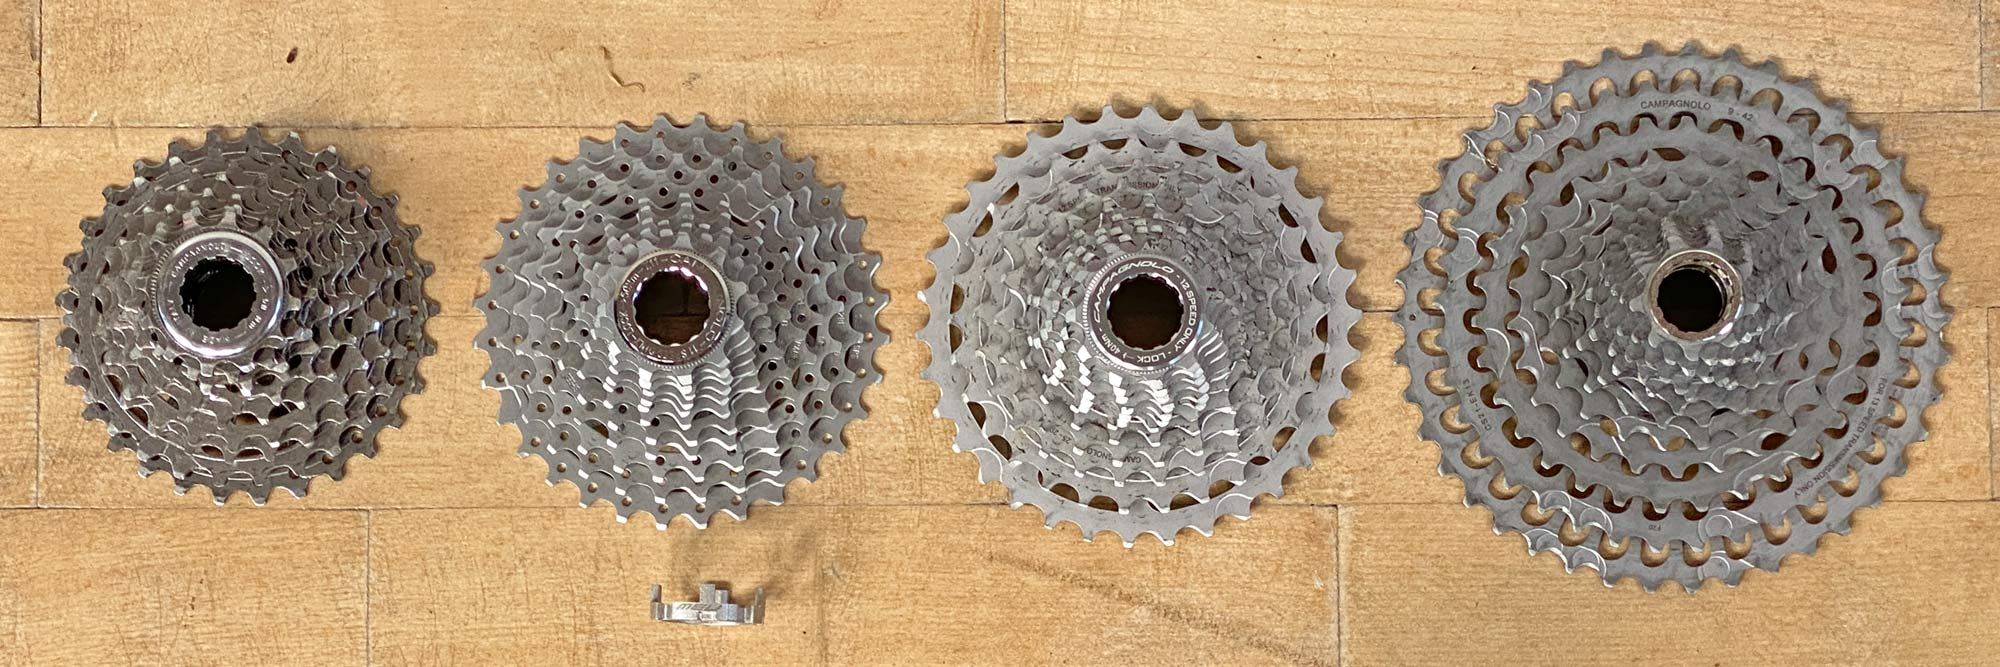 Campagnolo N3W freehub body Tech Feature in detail, new Campy backwards compatible gravel road bike wheels,10sp 11sp 12sp 13sp